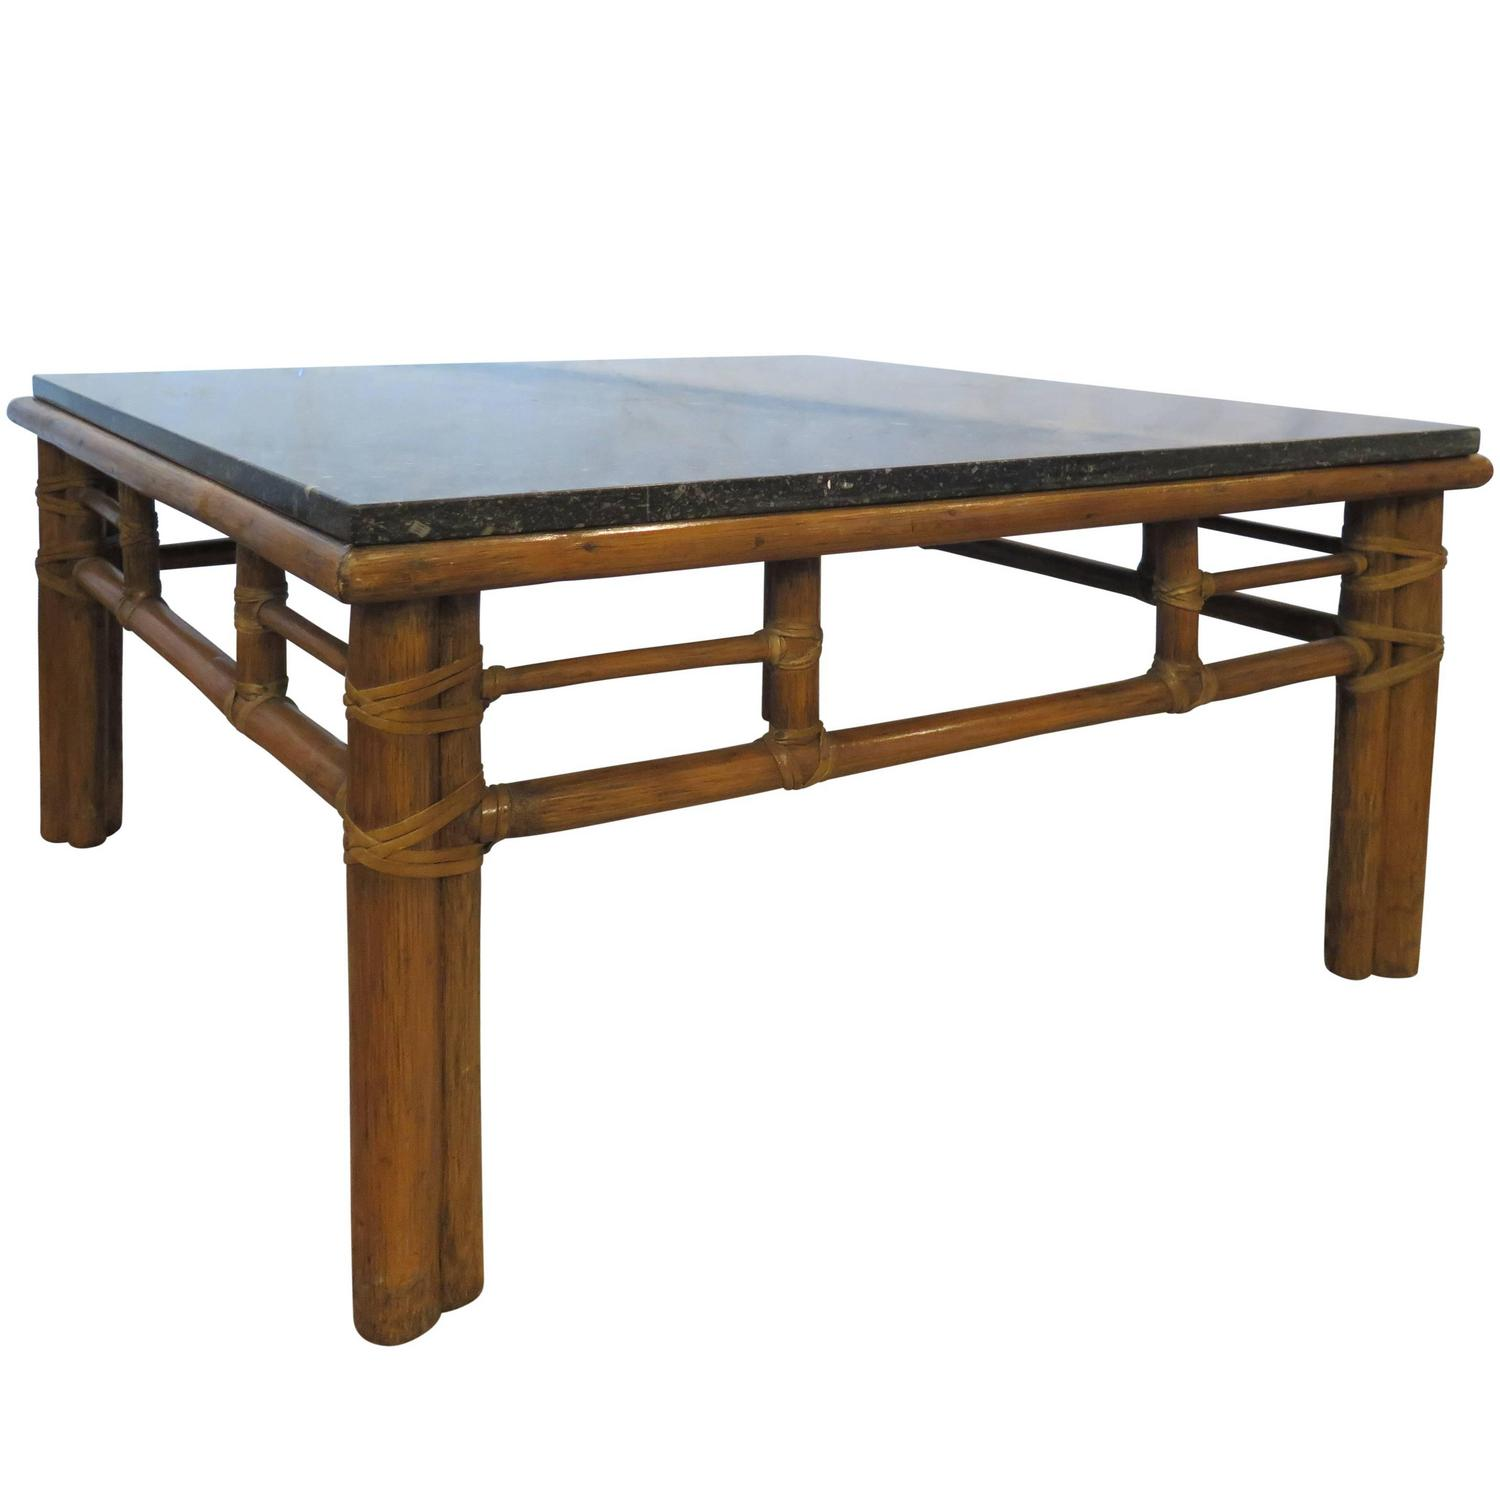 Mcguire coffee table with black marble top for sale at 1stdibs Stone top coffee table